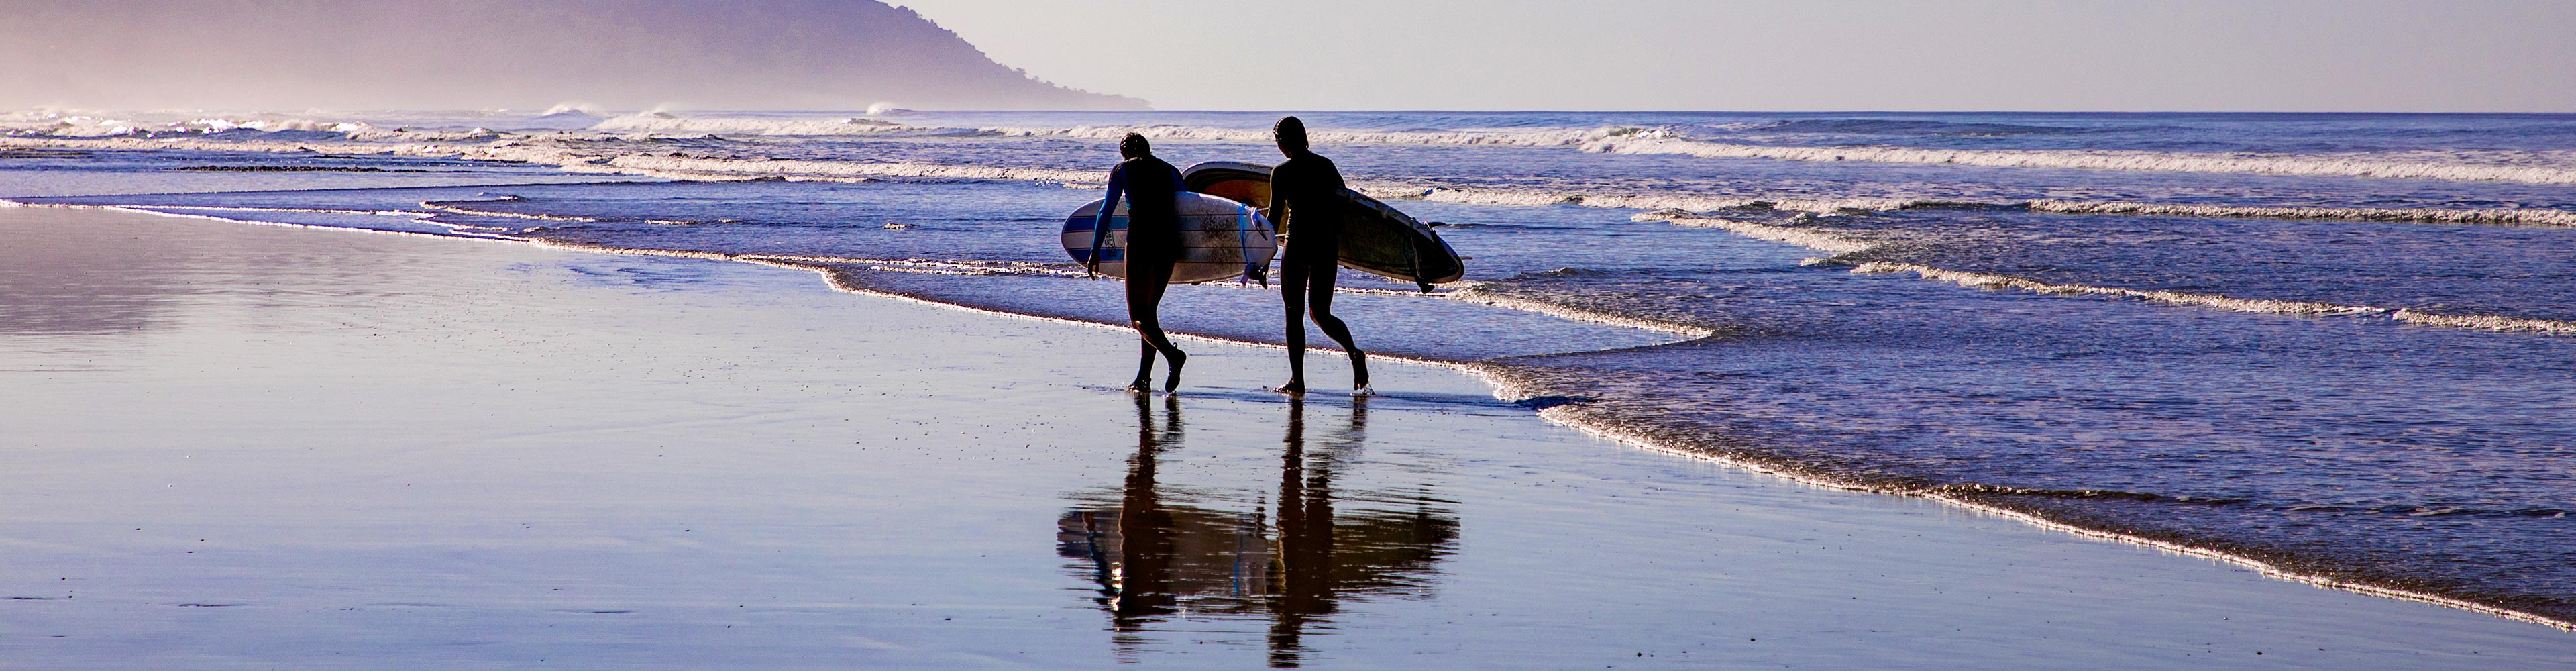 Costa Rica Beginner Surfing